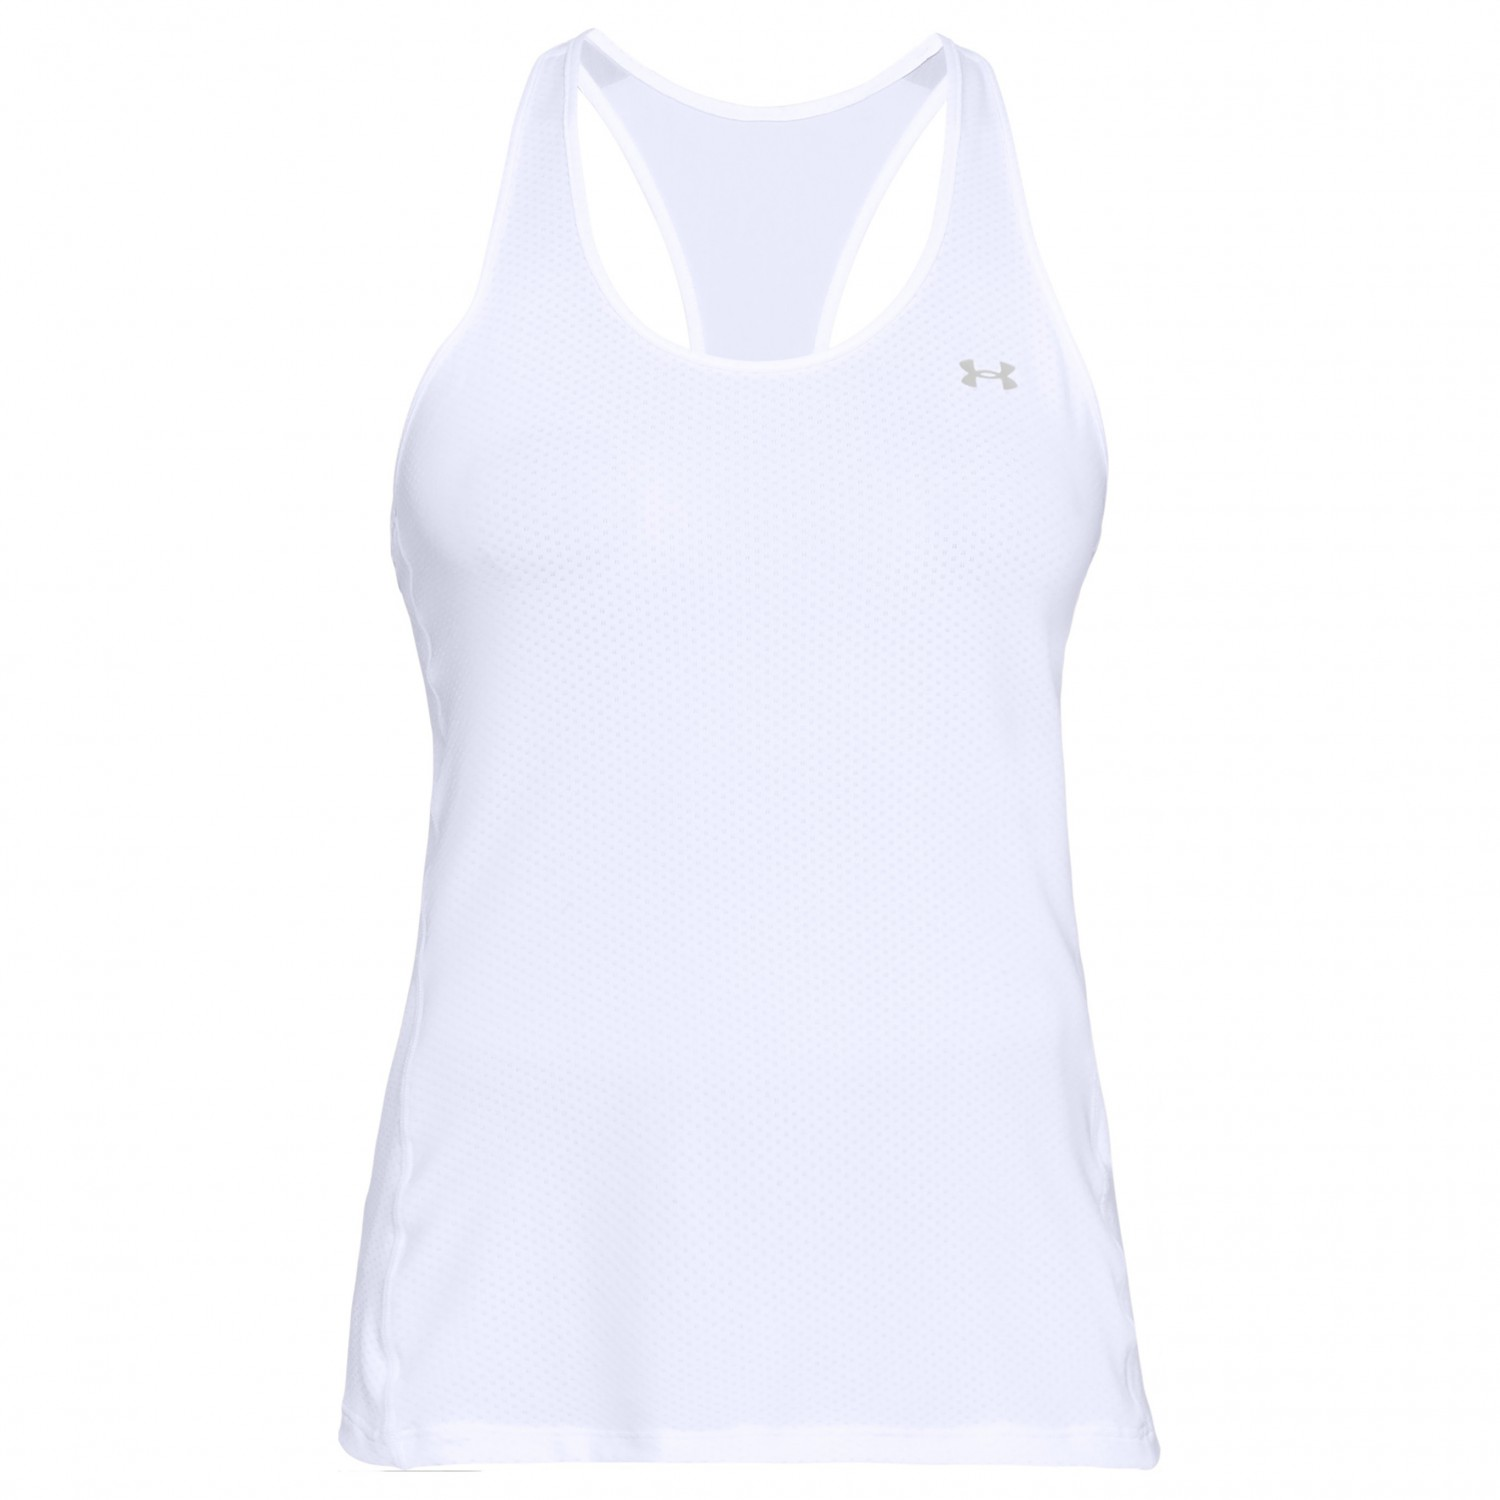 73df4cd0563cb Under Armour HeatGear Armour Racer Tank - Tank Top Women's | Buy ...